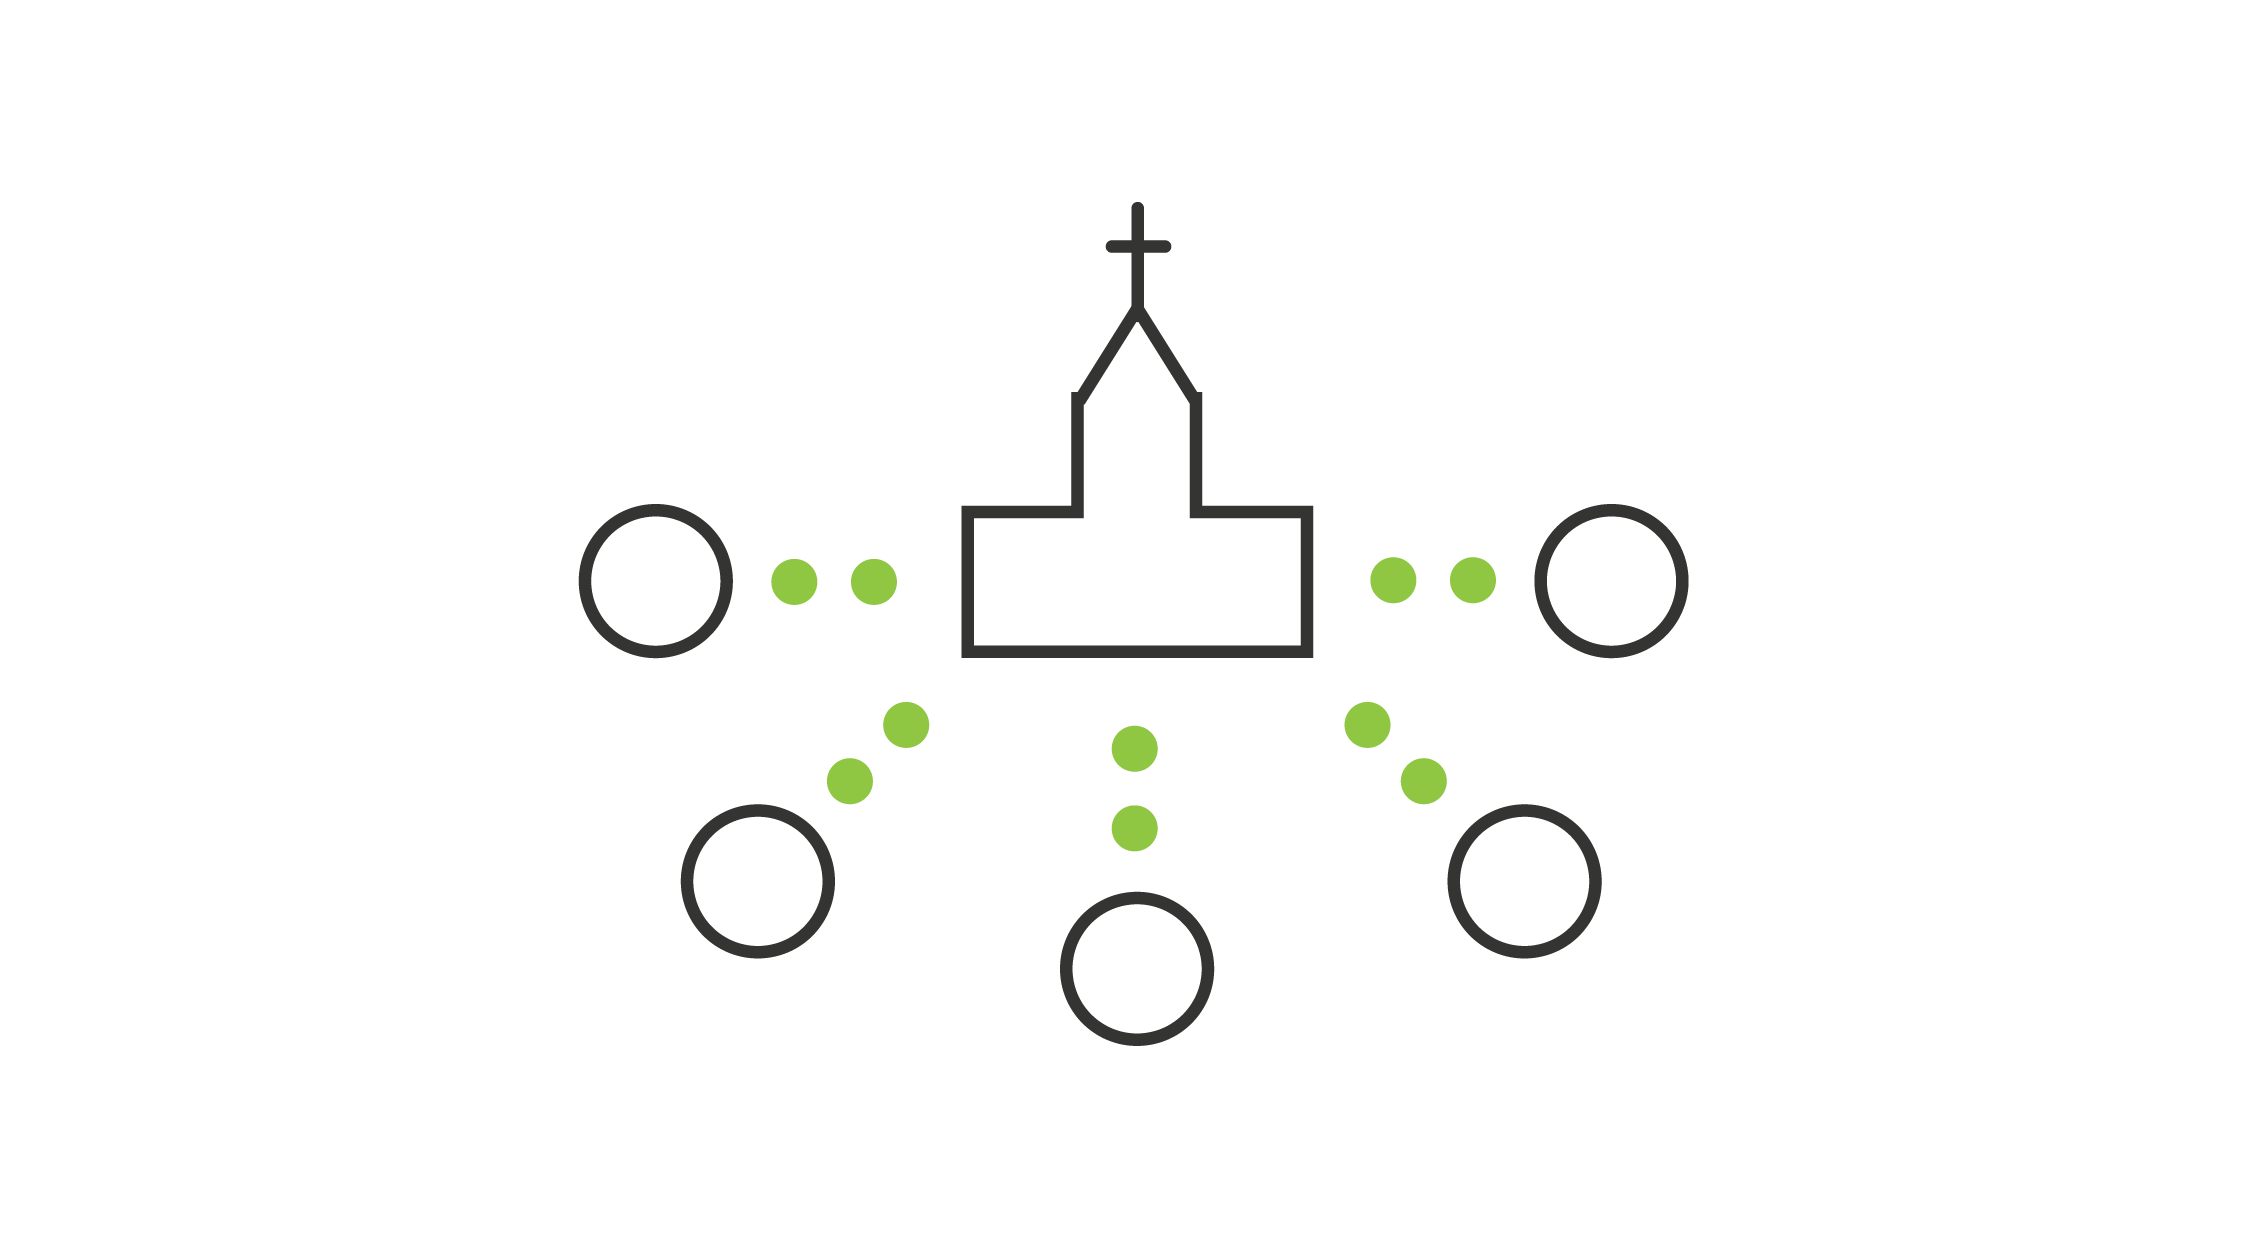 green_Church_rgb-01.png